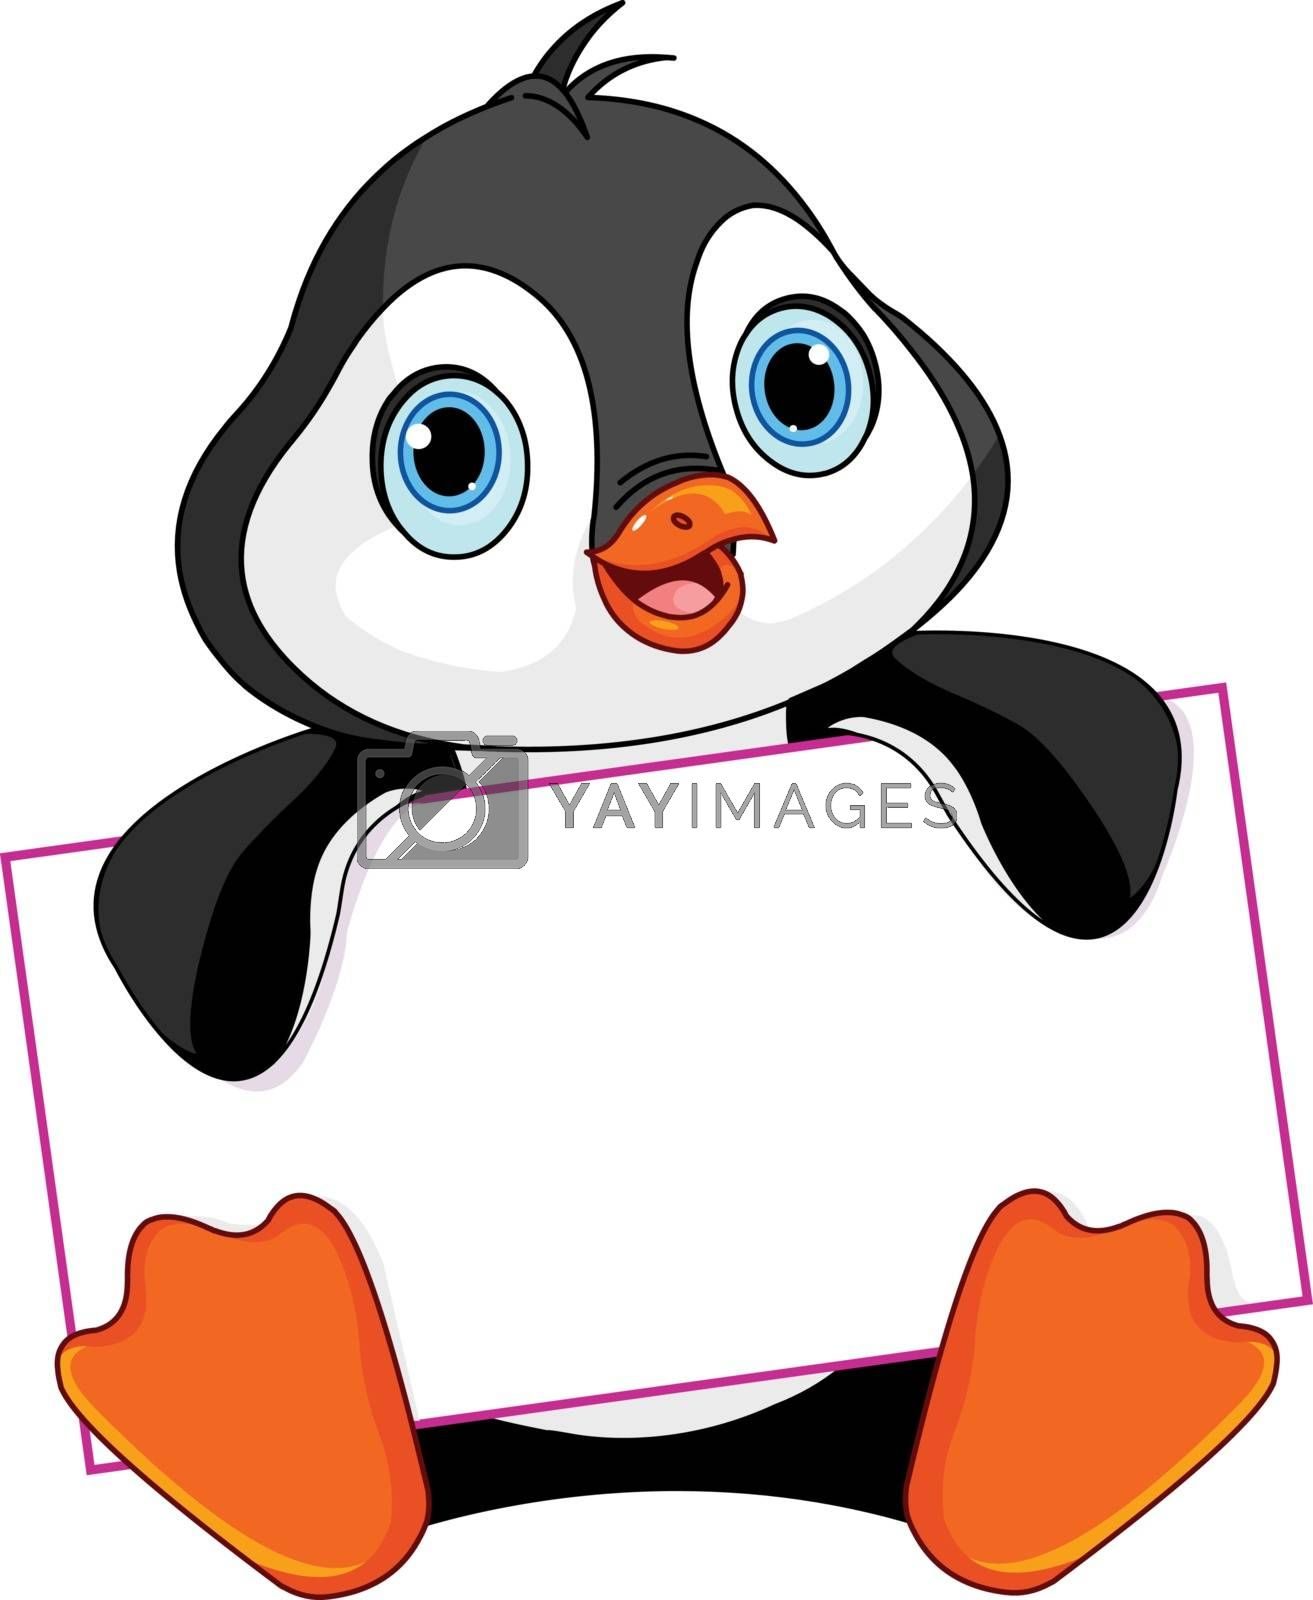 Royalty free image of Penguin sign by Dazdraperma